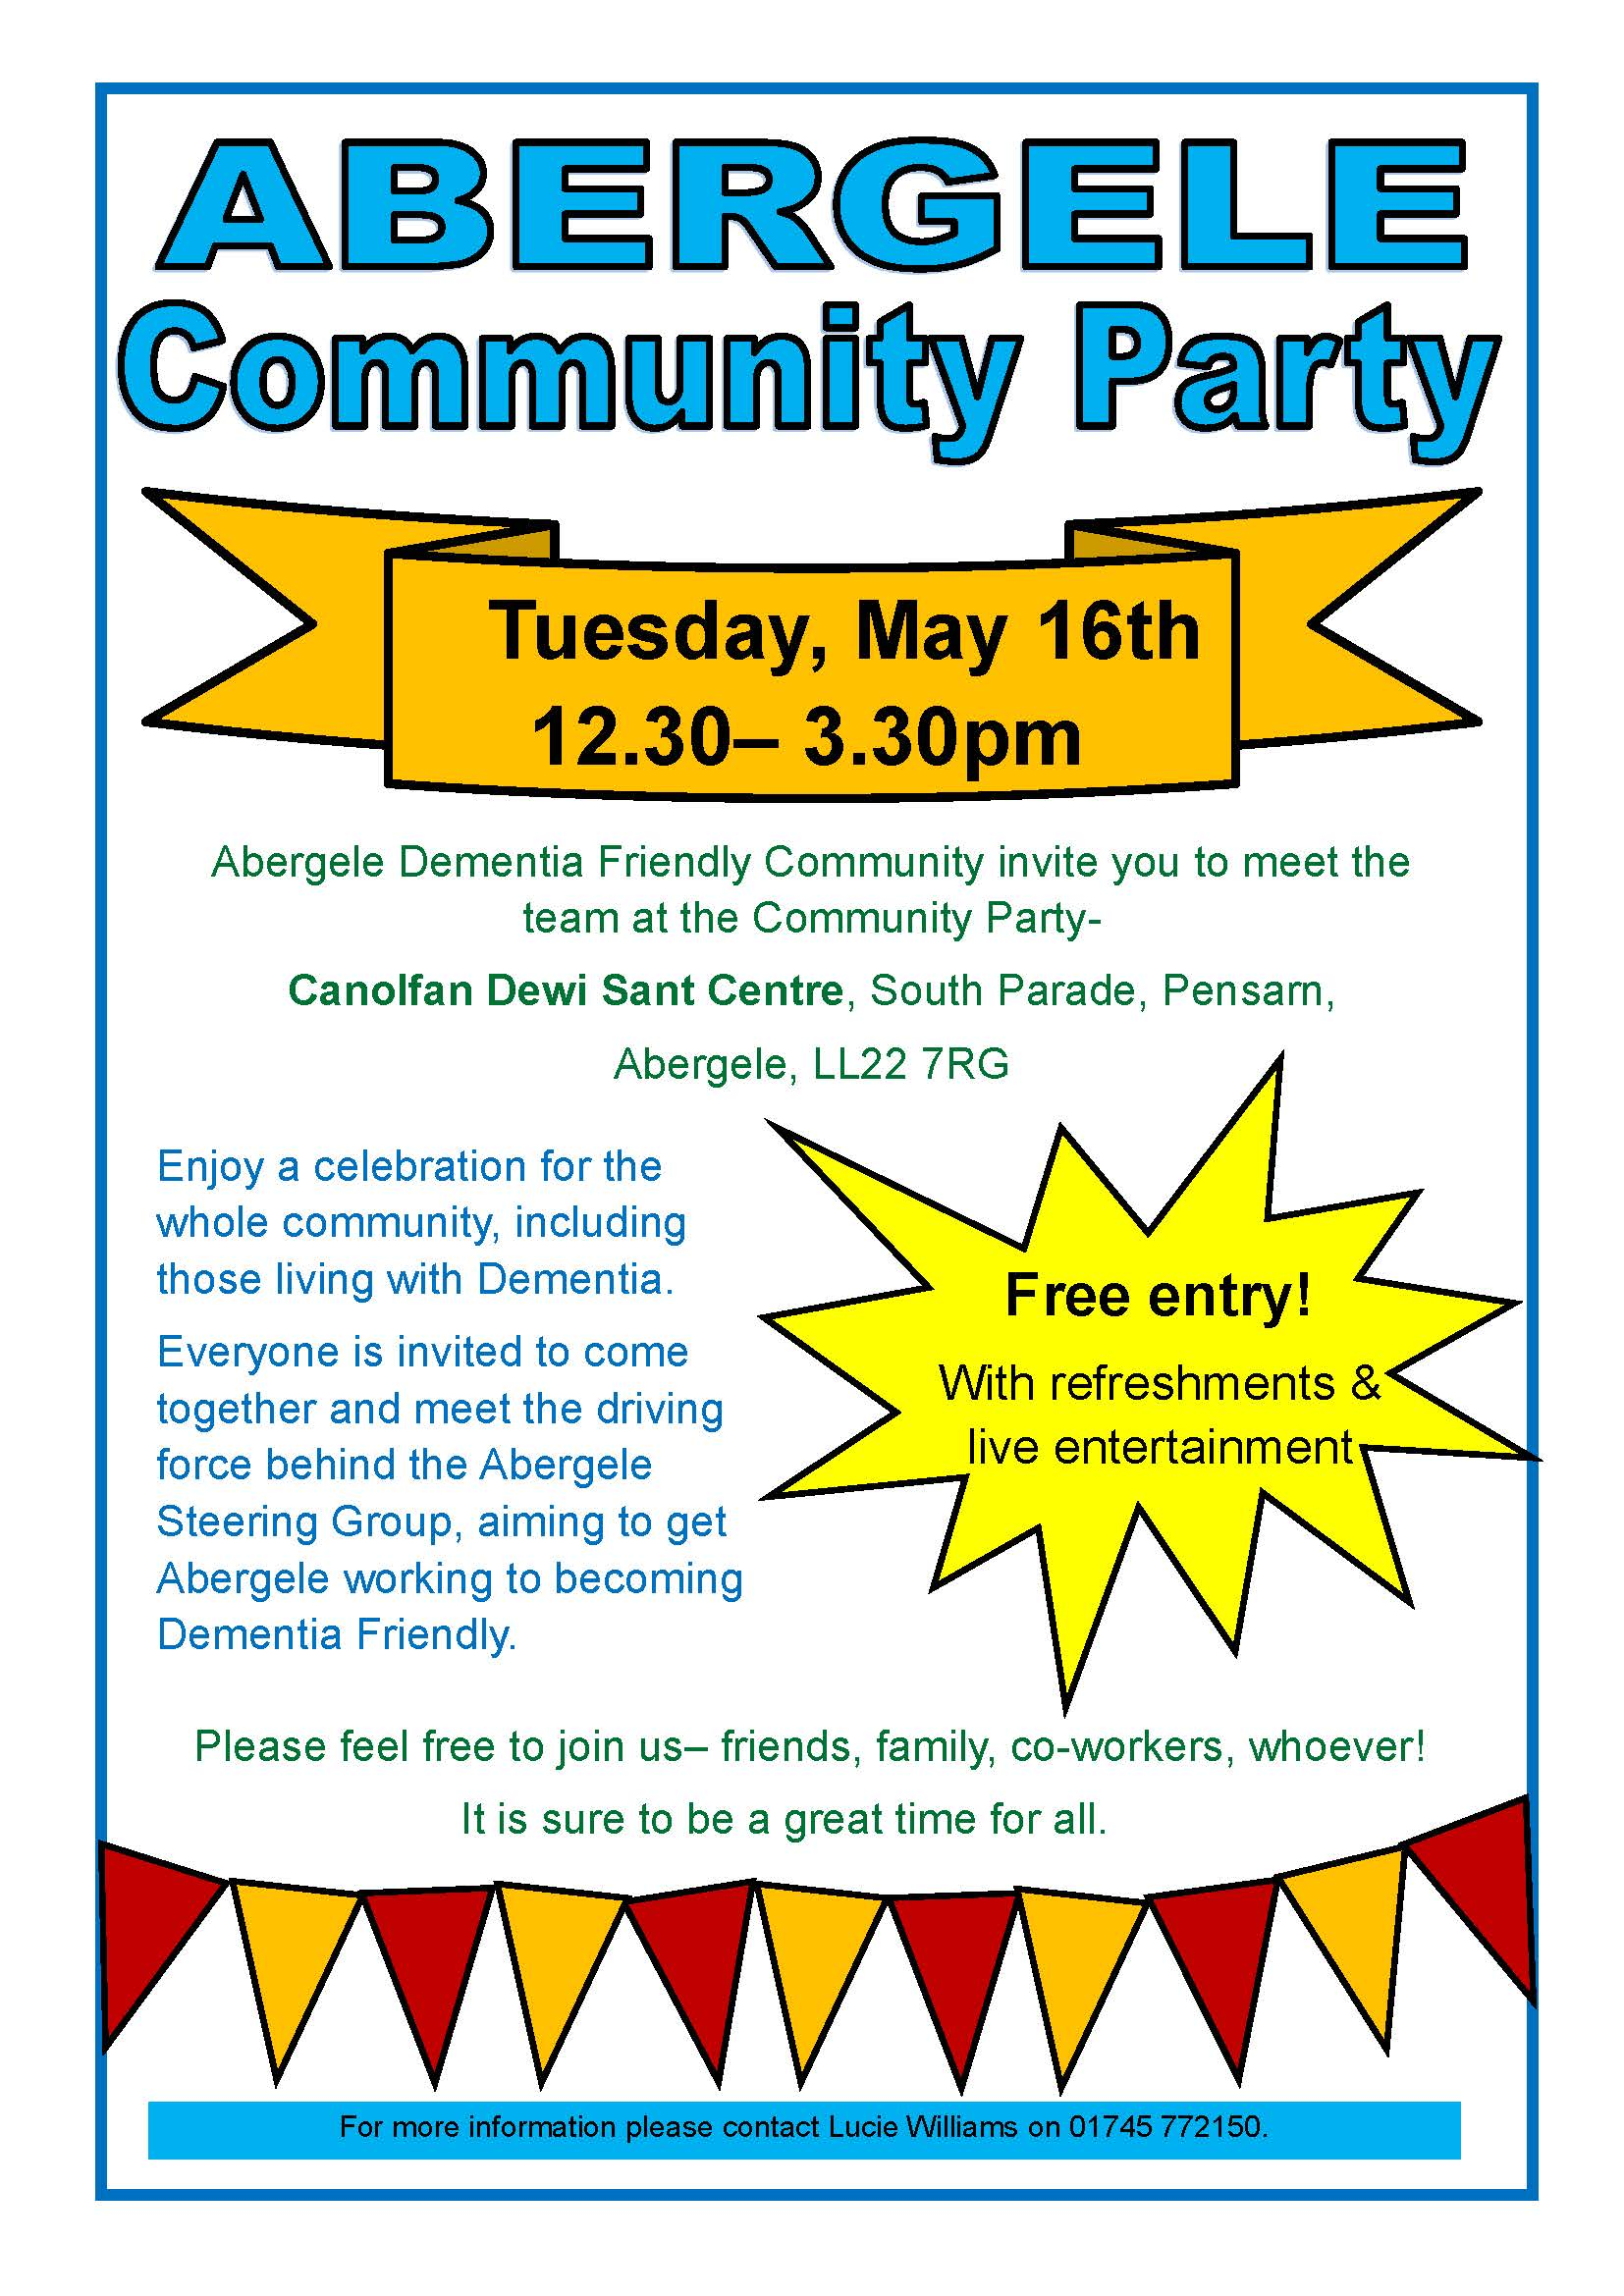 You're invited to Abergele Community Party!